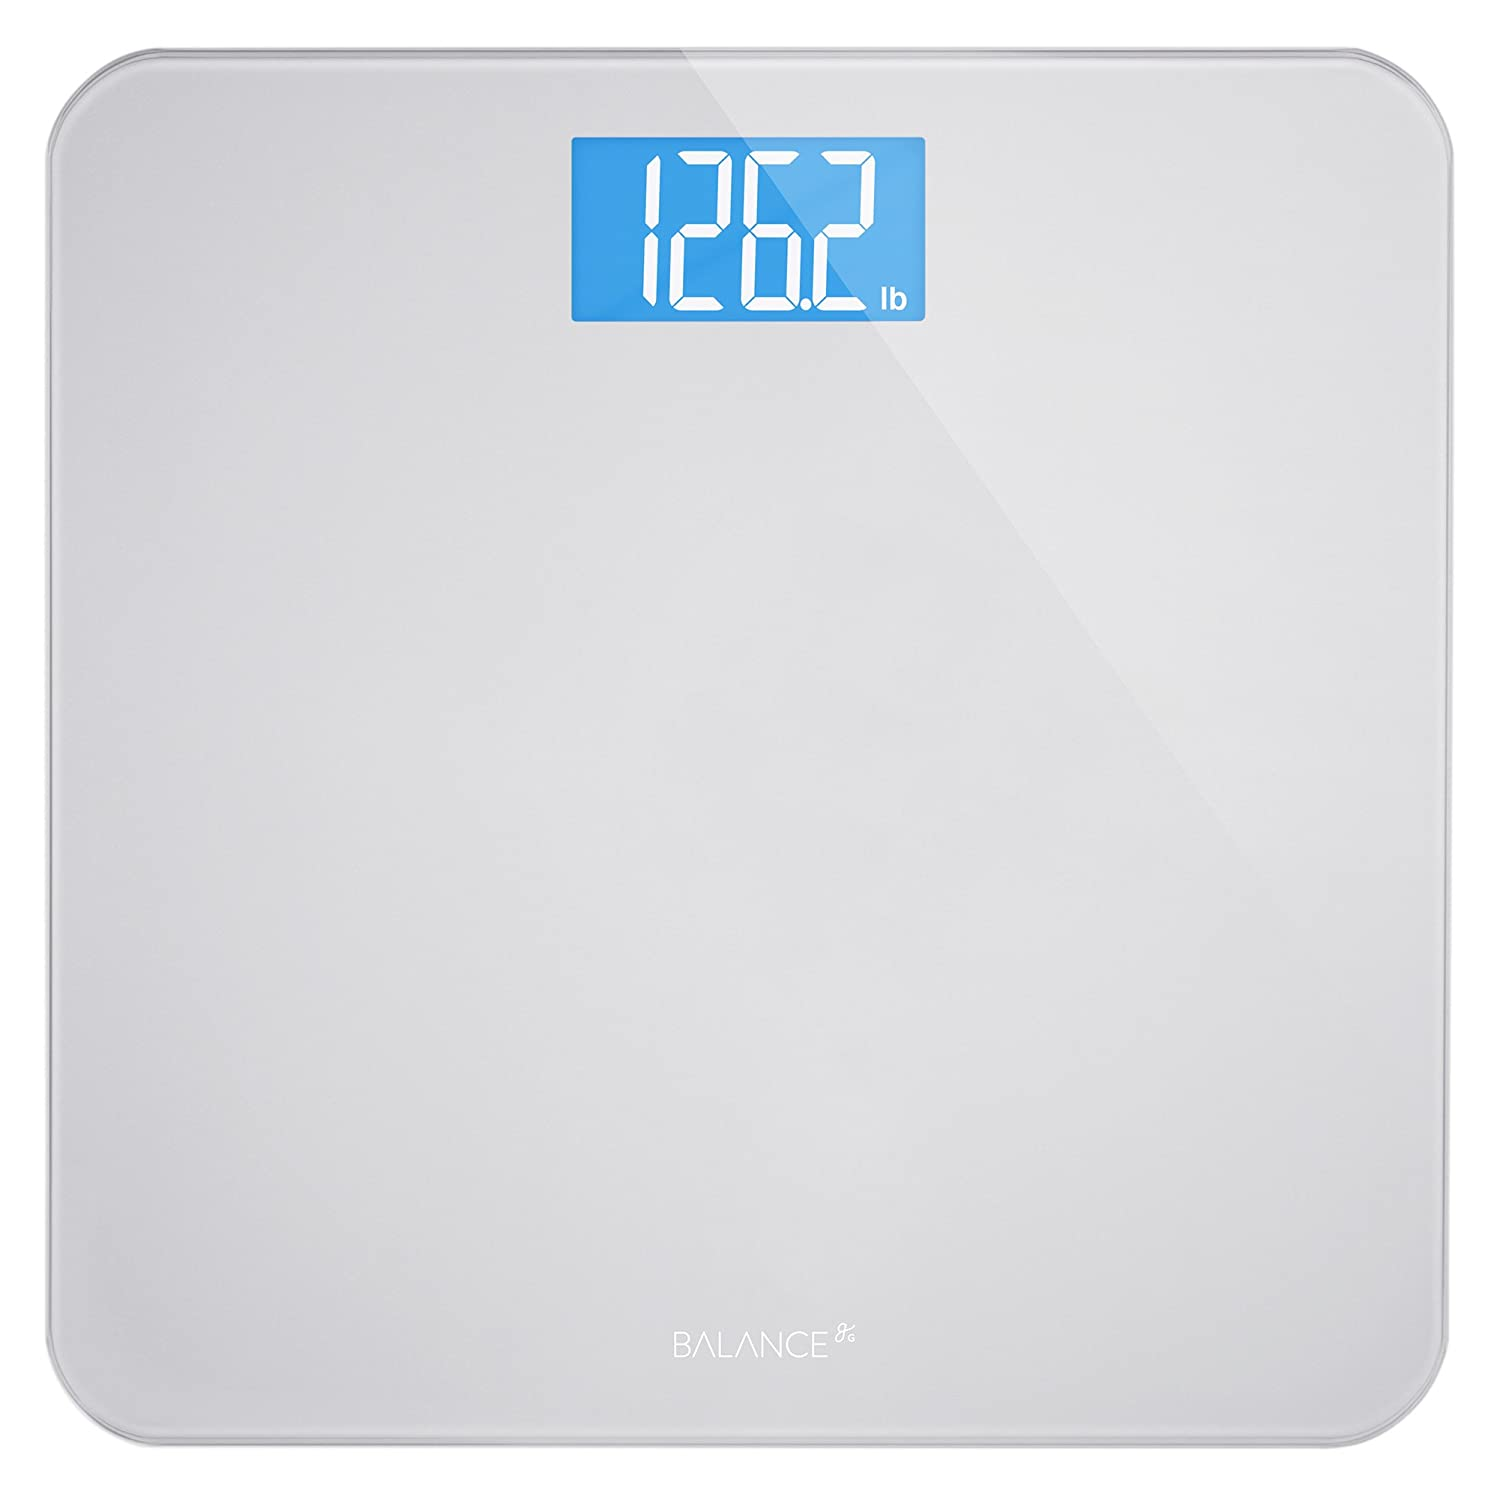 Amazon.com: Digital Body Weight Bathroom Scale by GreaterGoods ...